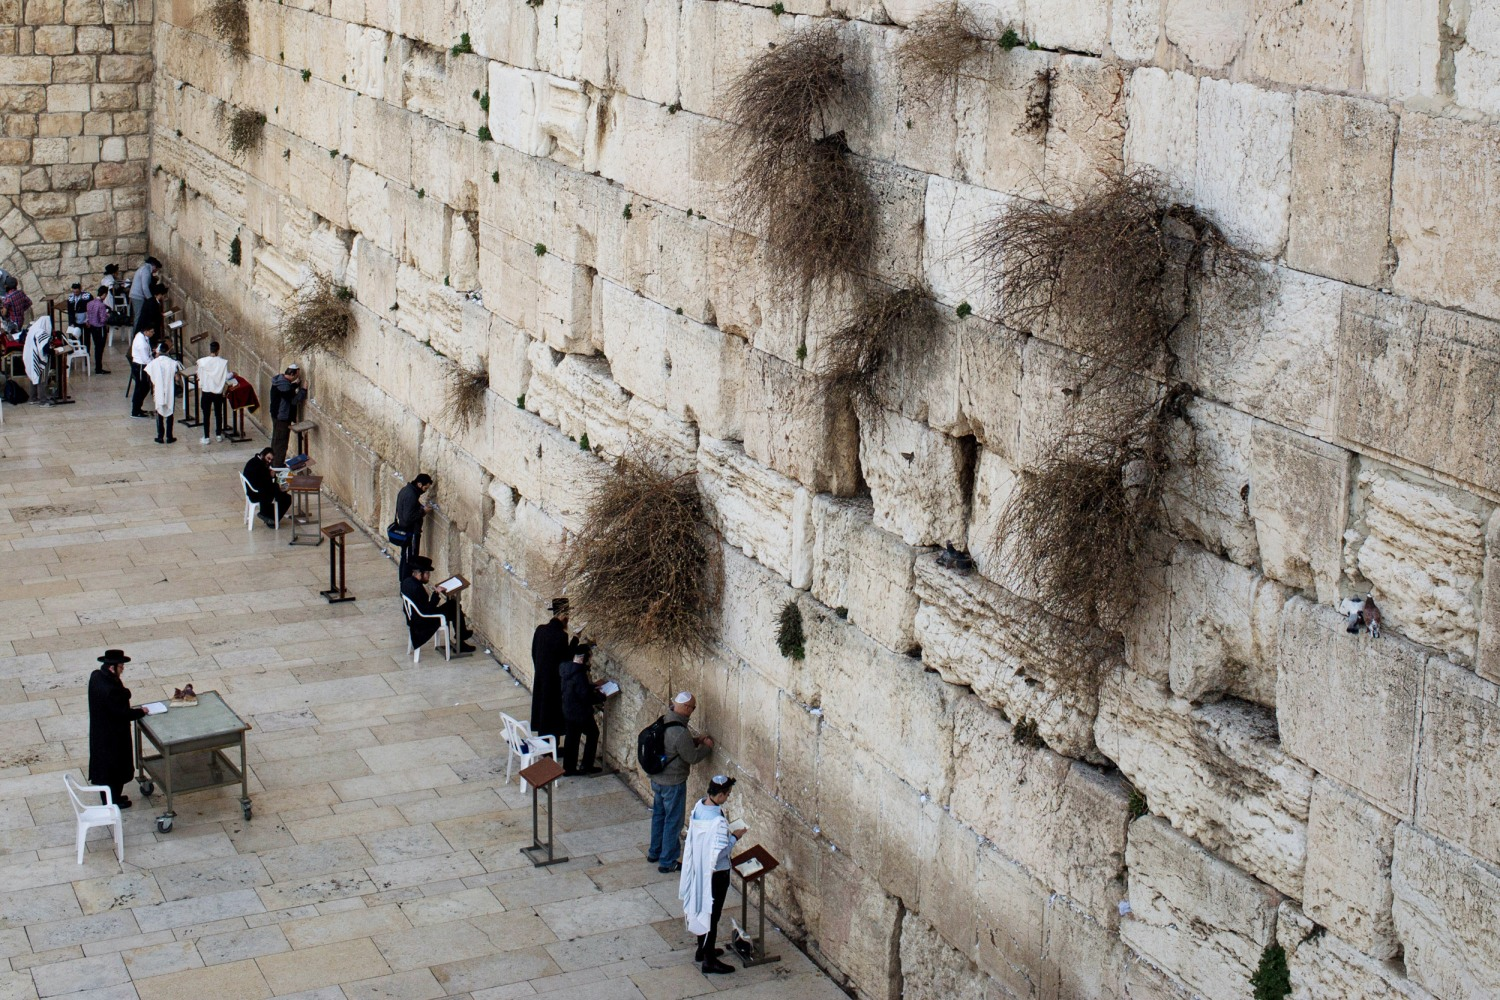 Trump Administration Continues Mixed Signals on Western Wall